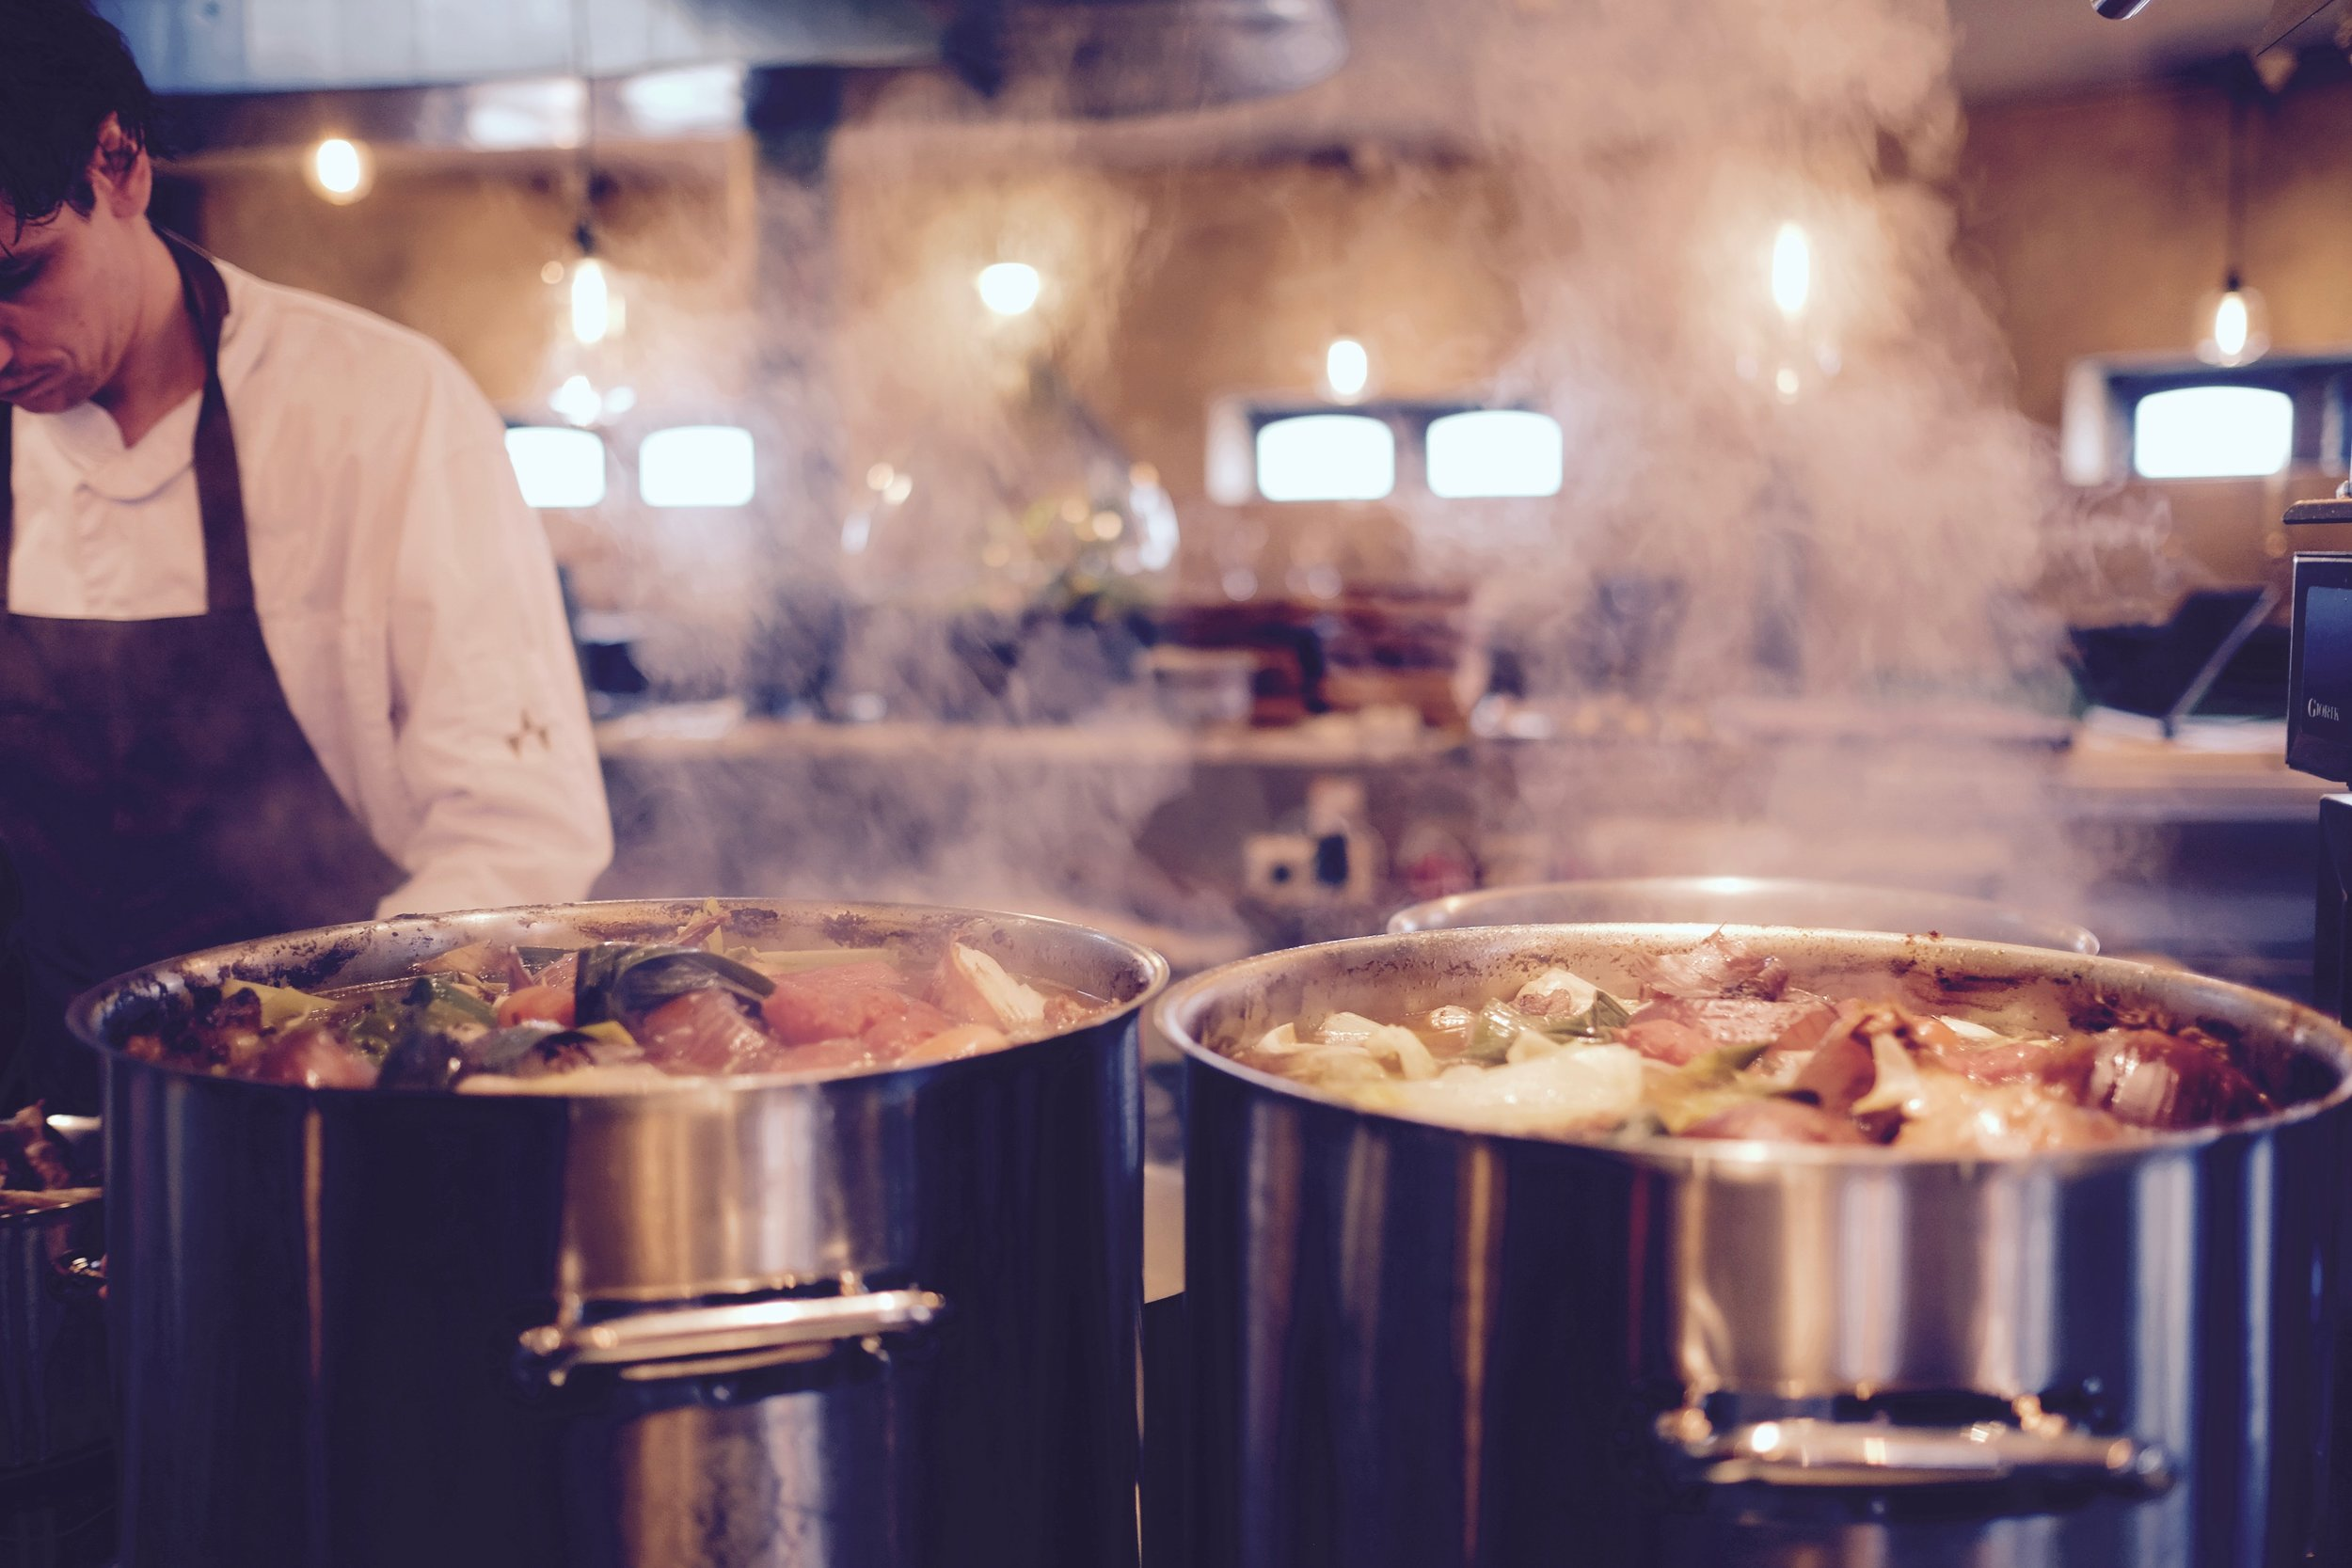 Kitchen Equipment - We supply a range of kitchen equipment for commercial kitchens, from knives to ovens, we can cater for your requirements. Contact us today for our comprehensive equipment brochure and special offers.